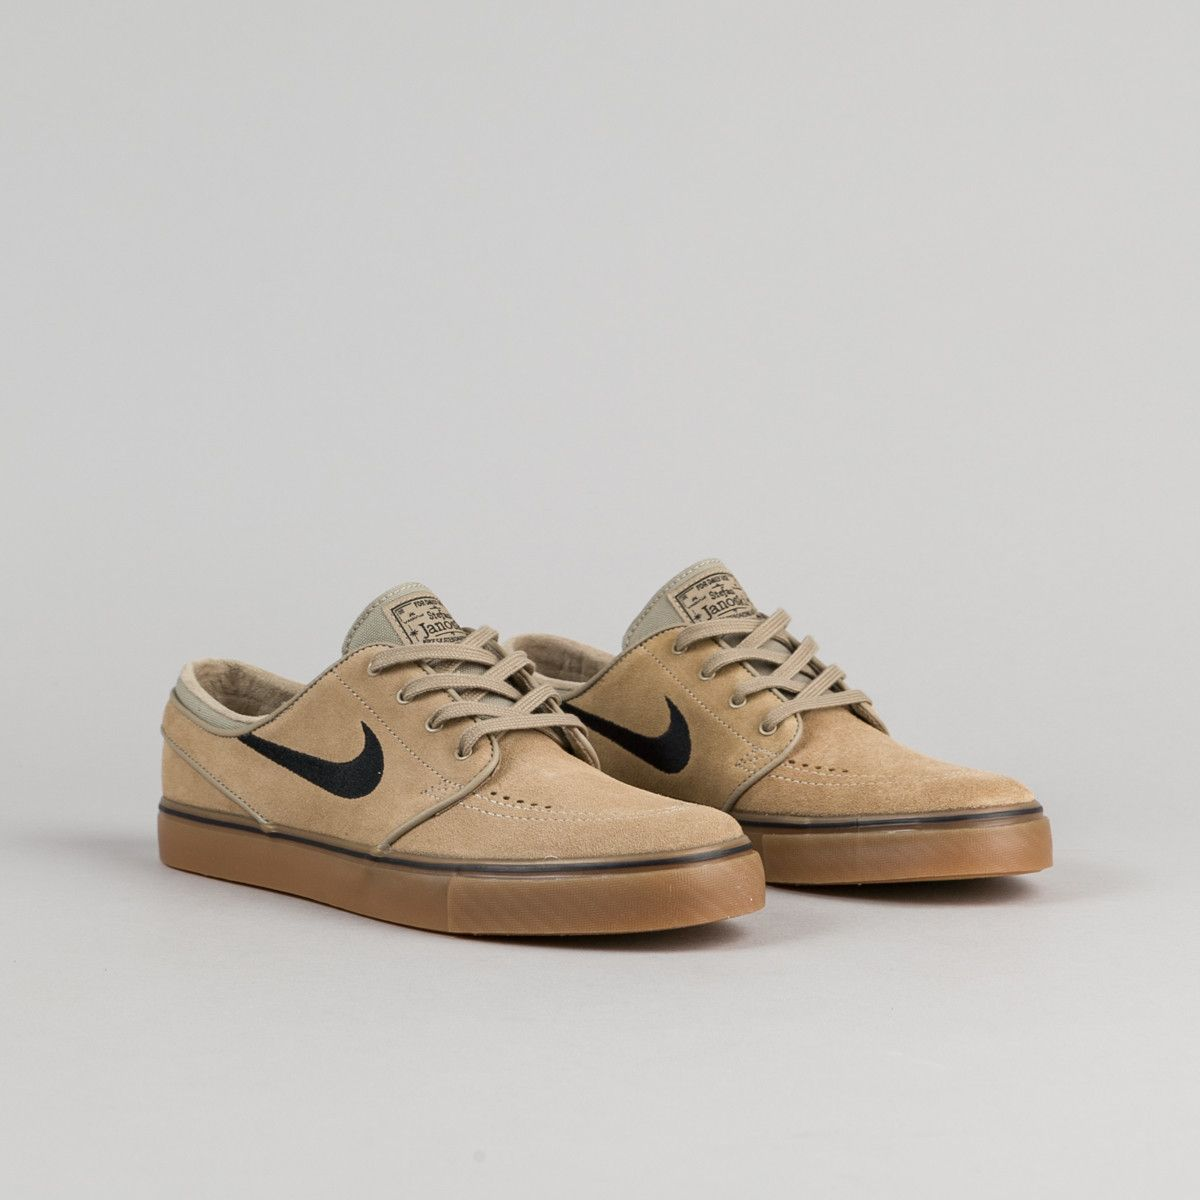 info for 891aa 8c123 Nike SB Stefan Janoski Shoes - Khaki   Black - Gum Light Brown   Flatspot